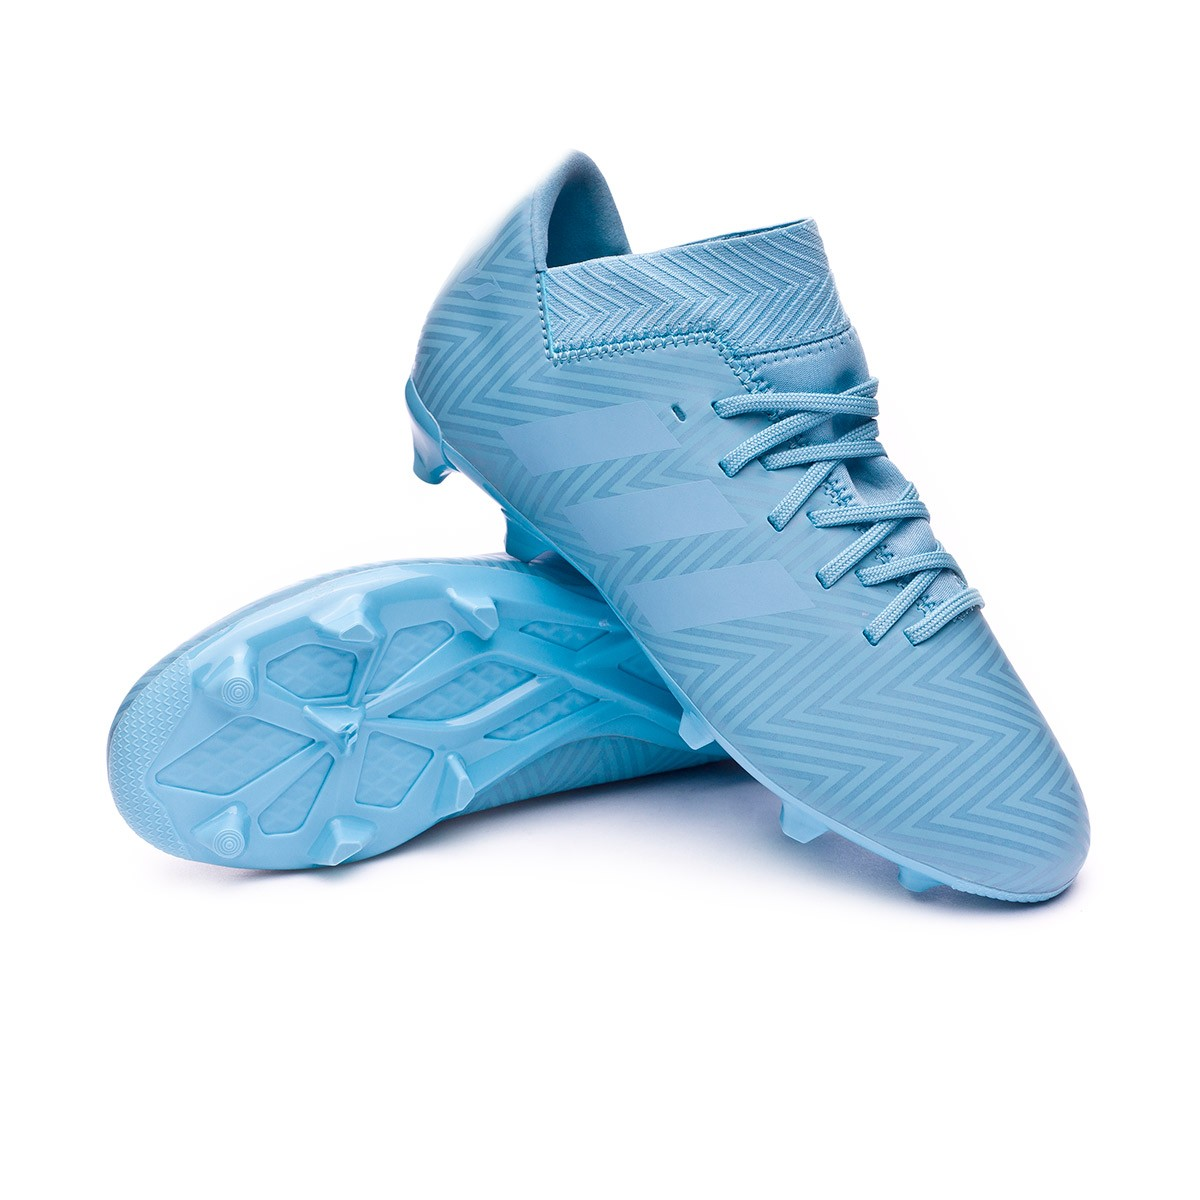 release date 5d2a0 5cffa Football Boots adidas Kids Nemeziz Messi 18.3 FG Ash blue-Raw grey -  Football store Fútbol Emotion